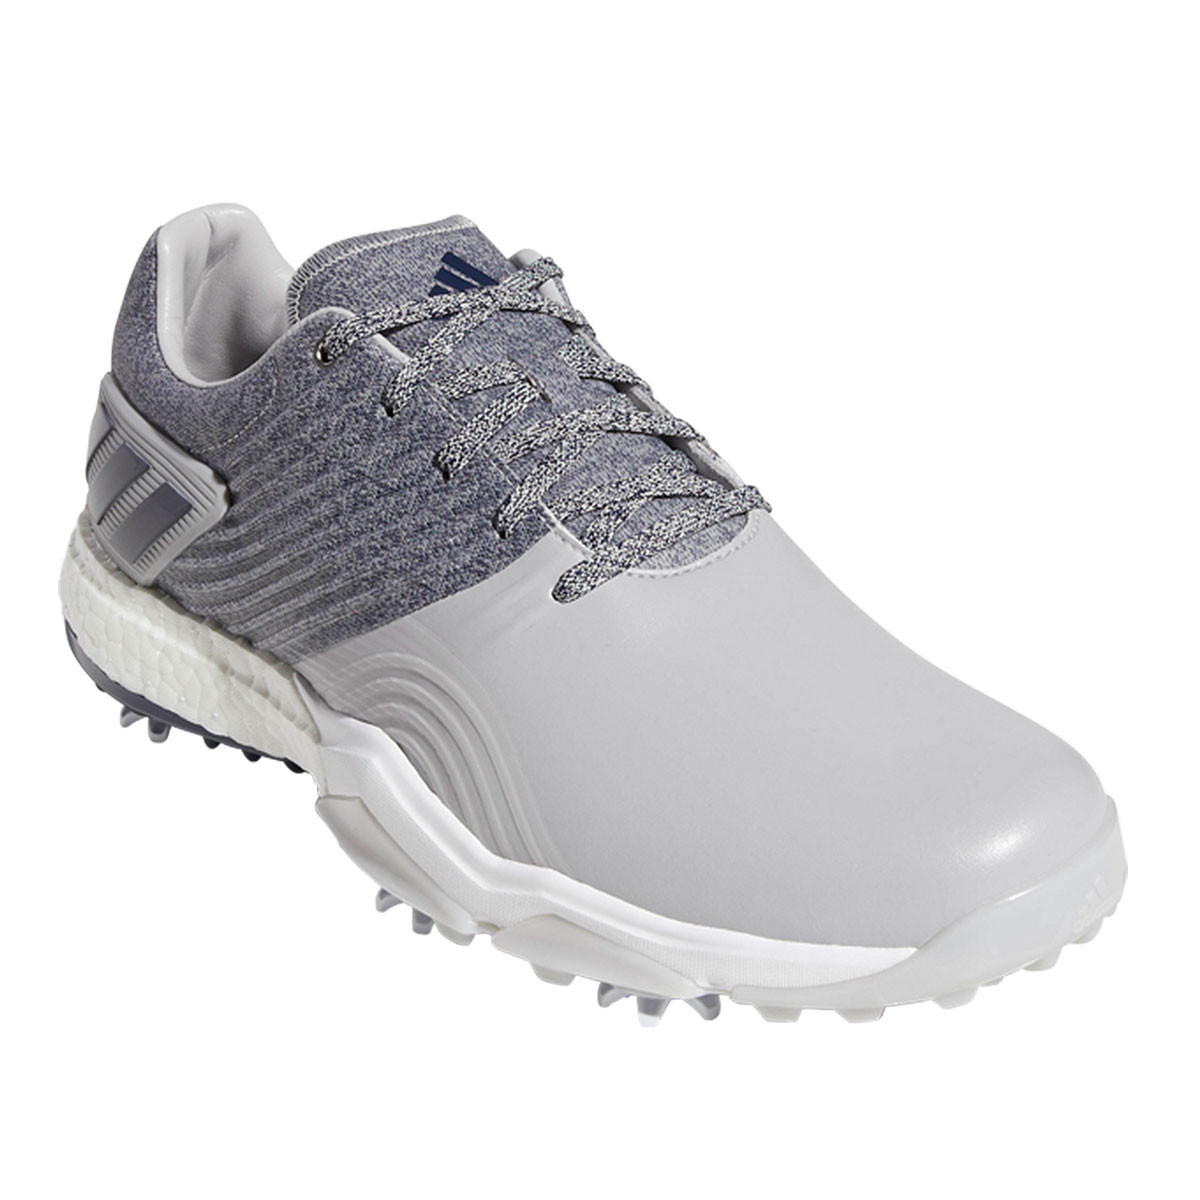 separation shoes a9908 ae308 adidas Golf Mens 2019 Adipower 4orged Spiked Golf Shoes